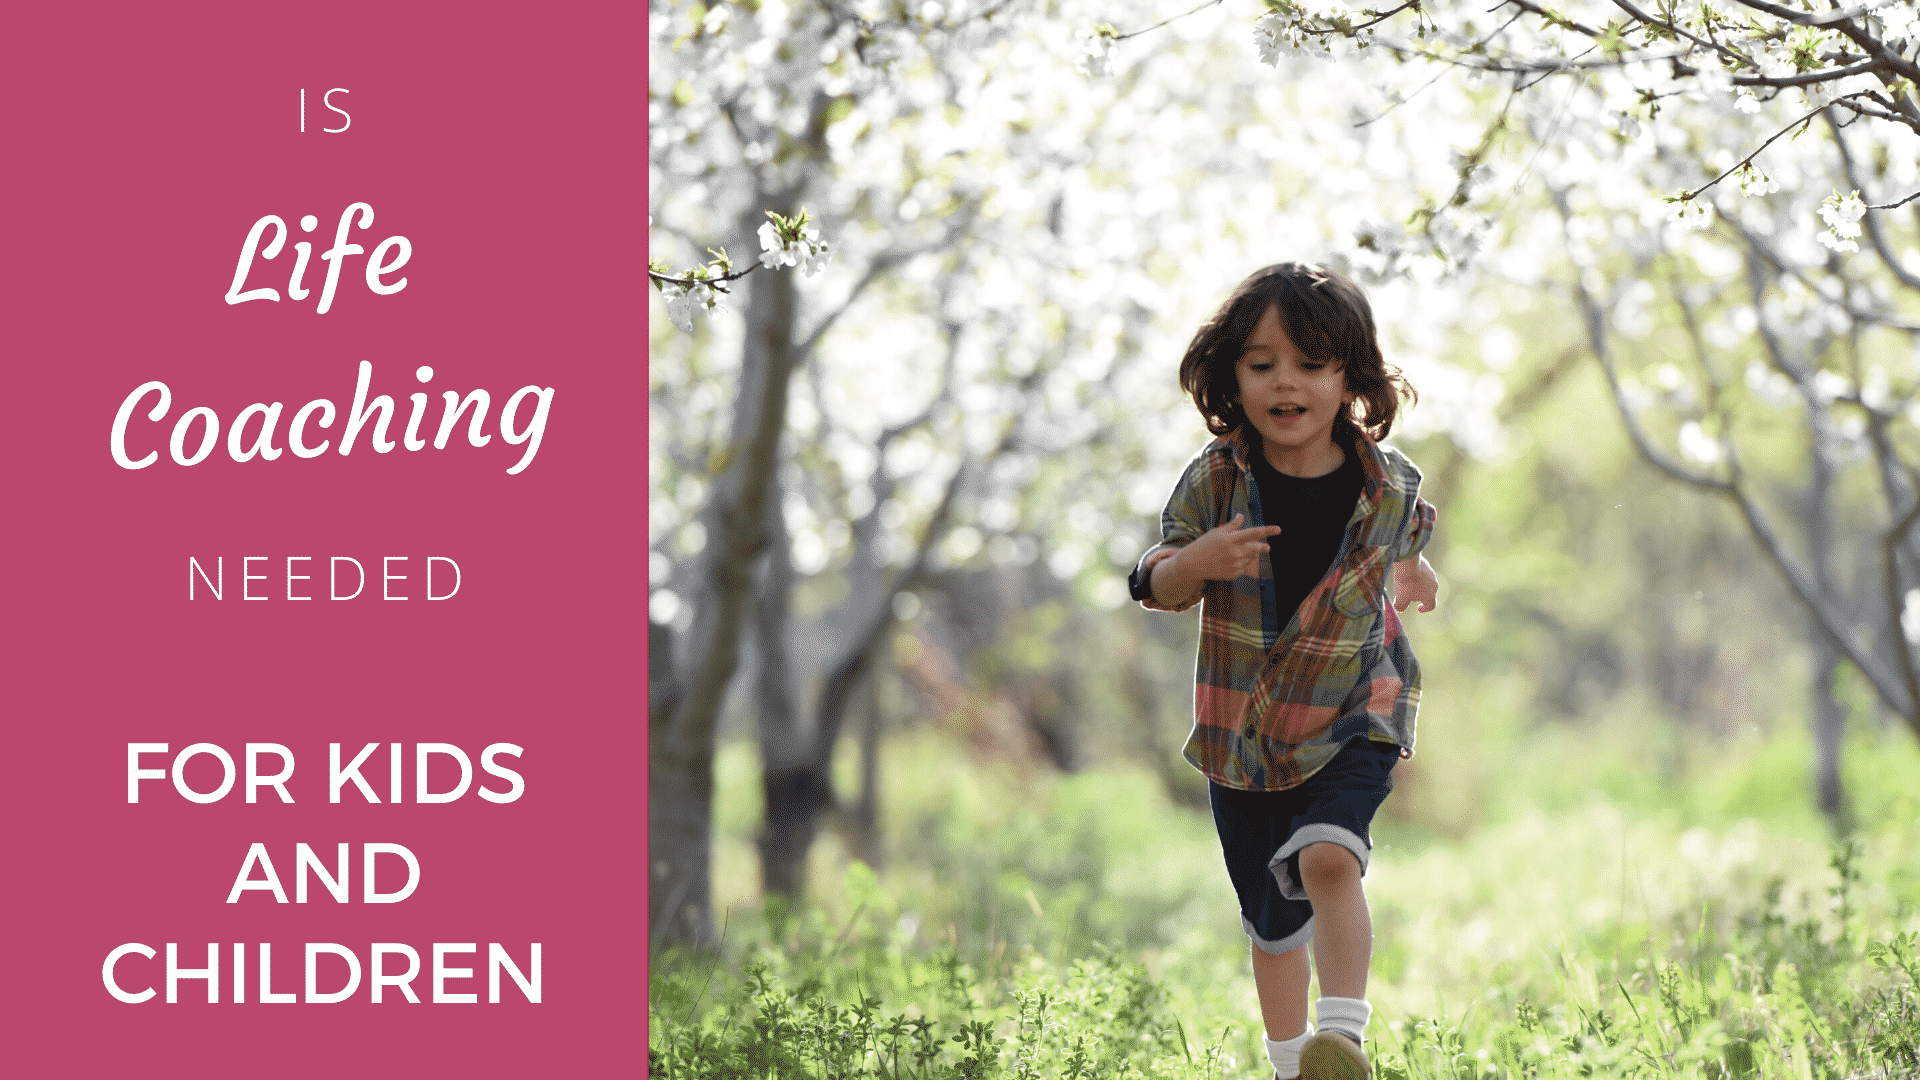 Is Life Coaching Needed For Kids and Children in 2020?